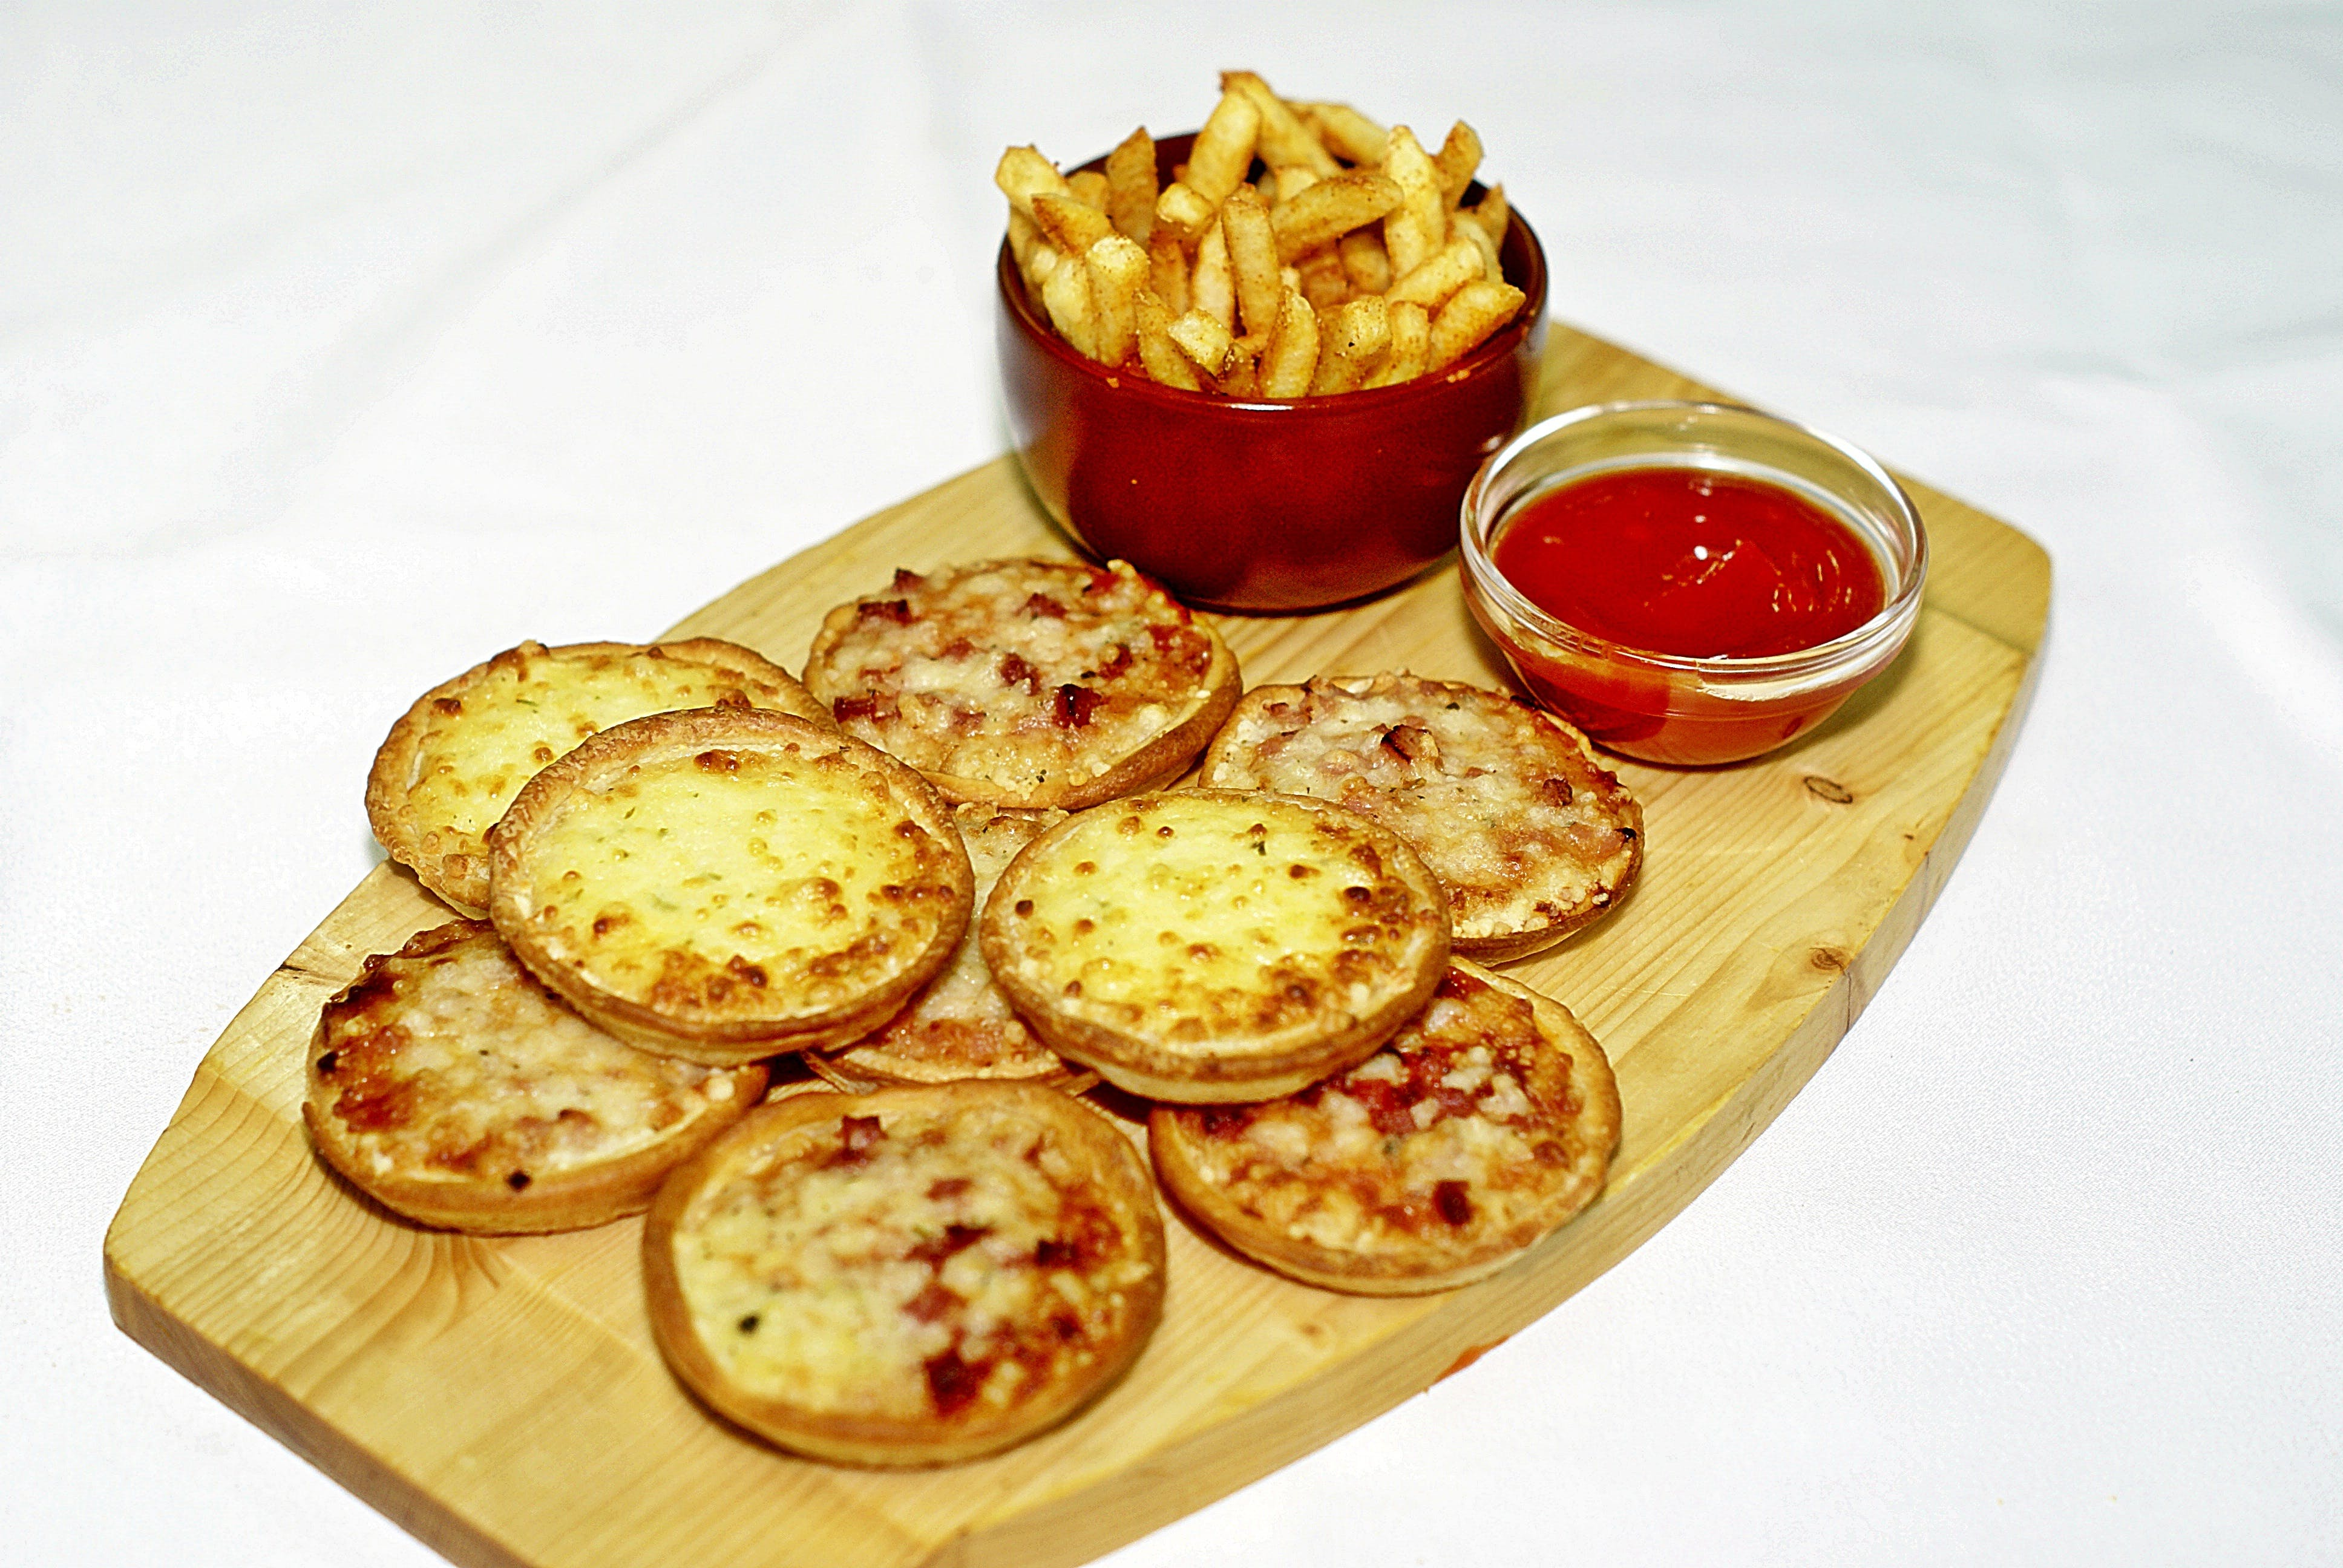 French Fries on Red Container